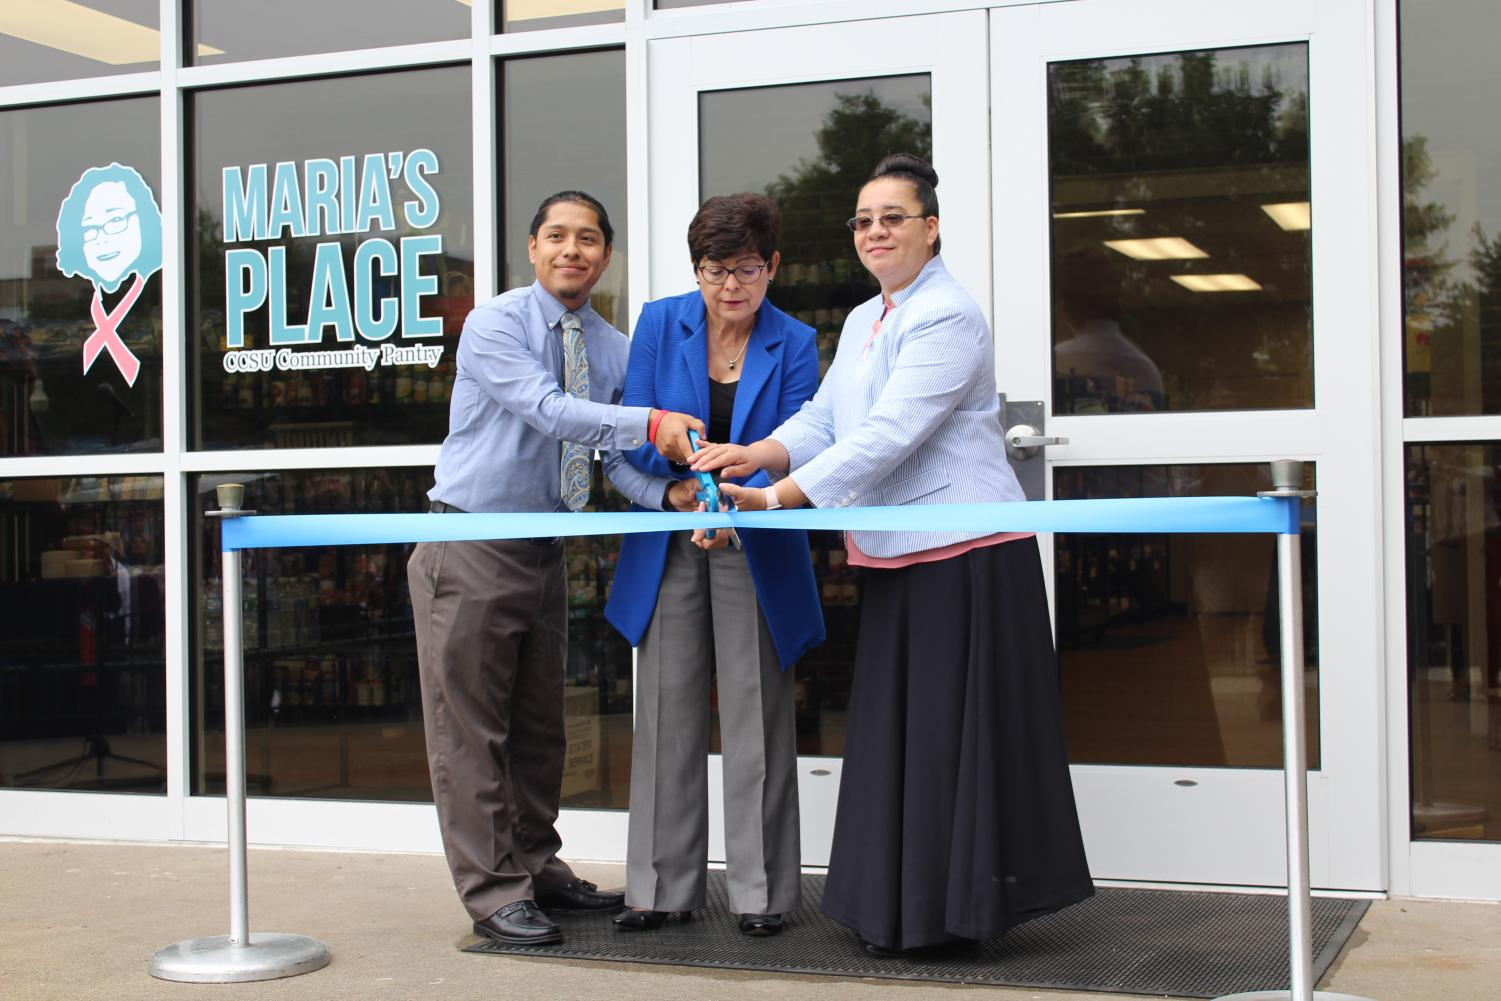 From left to right: Maria's Place Coordinator Freddy Rios, CCSU President Dr. Zulma Toro and Maria A. Alvarez's daughter Melina Lopez cut the ribbon for Maria's Place Friday.